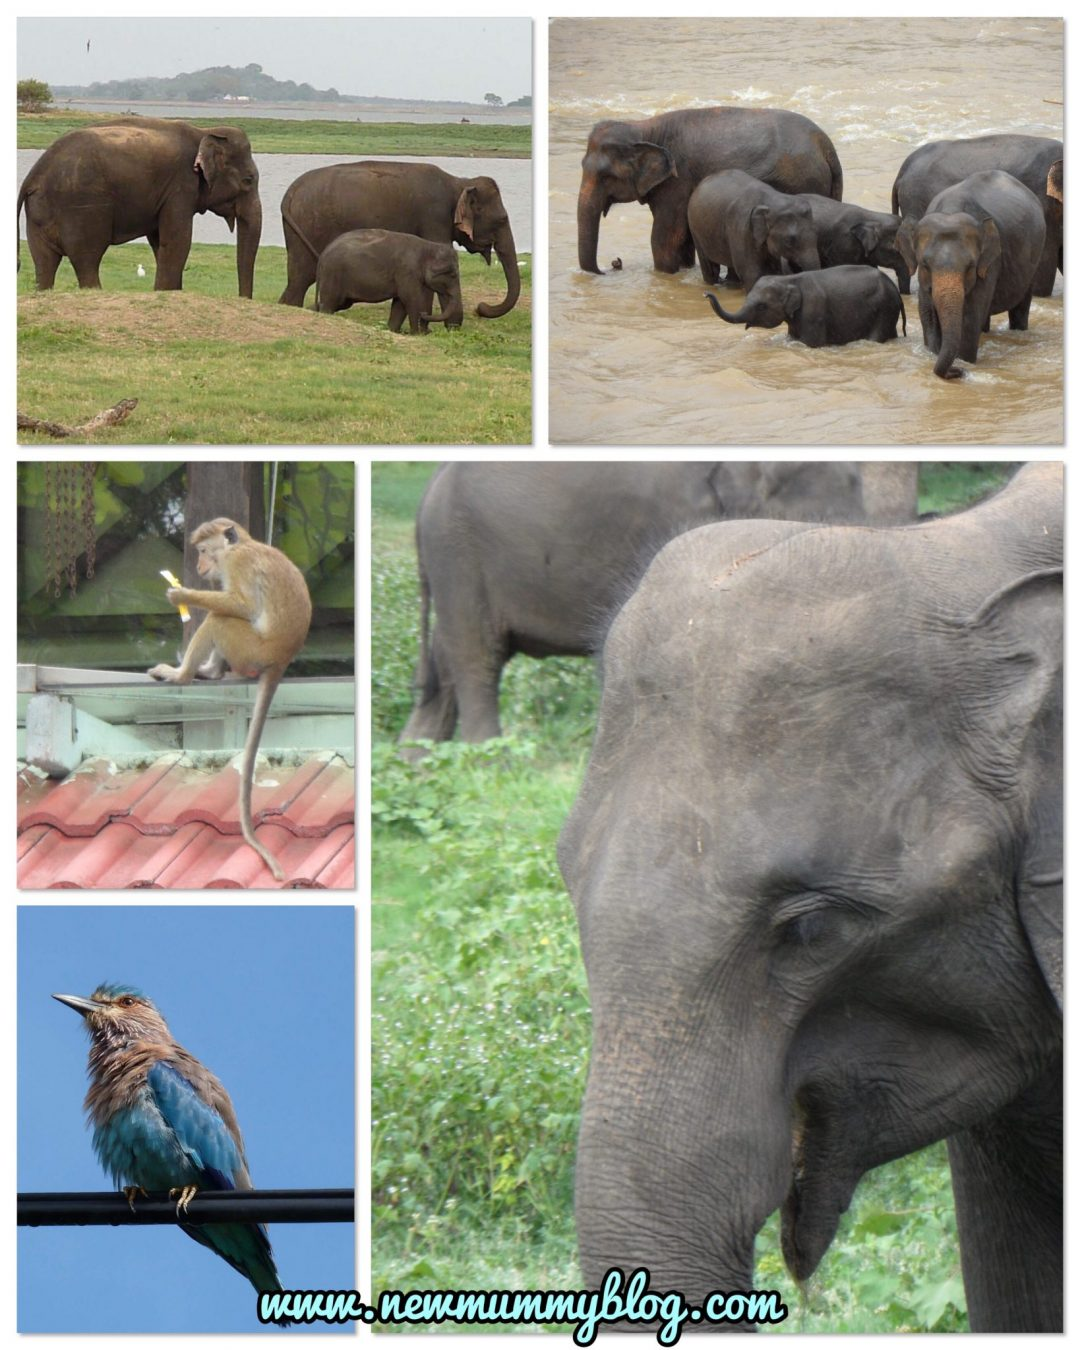 Sri Lanka honeymoon once in a lifetime experience with a second week in the Maldives - pinnawala elephant, monkeys, Asian elephants, Sri Lankan wildlife on a private tour on honeymoon